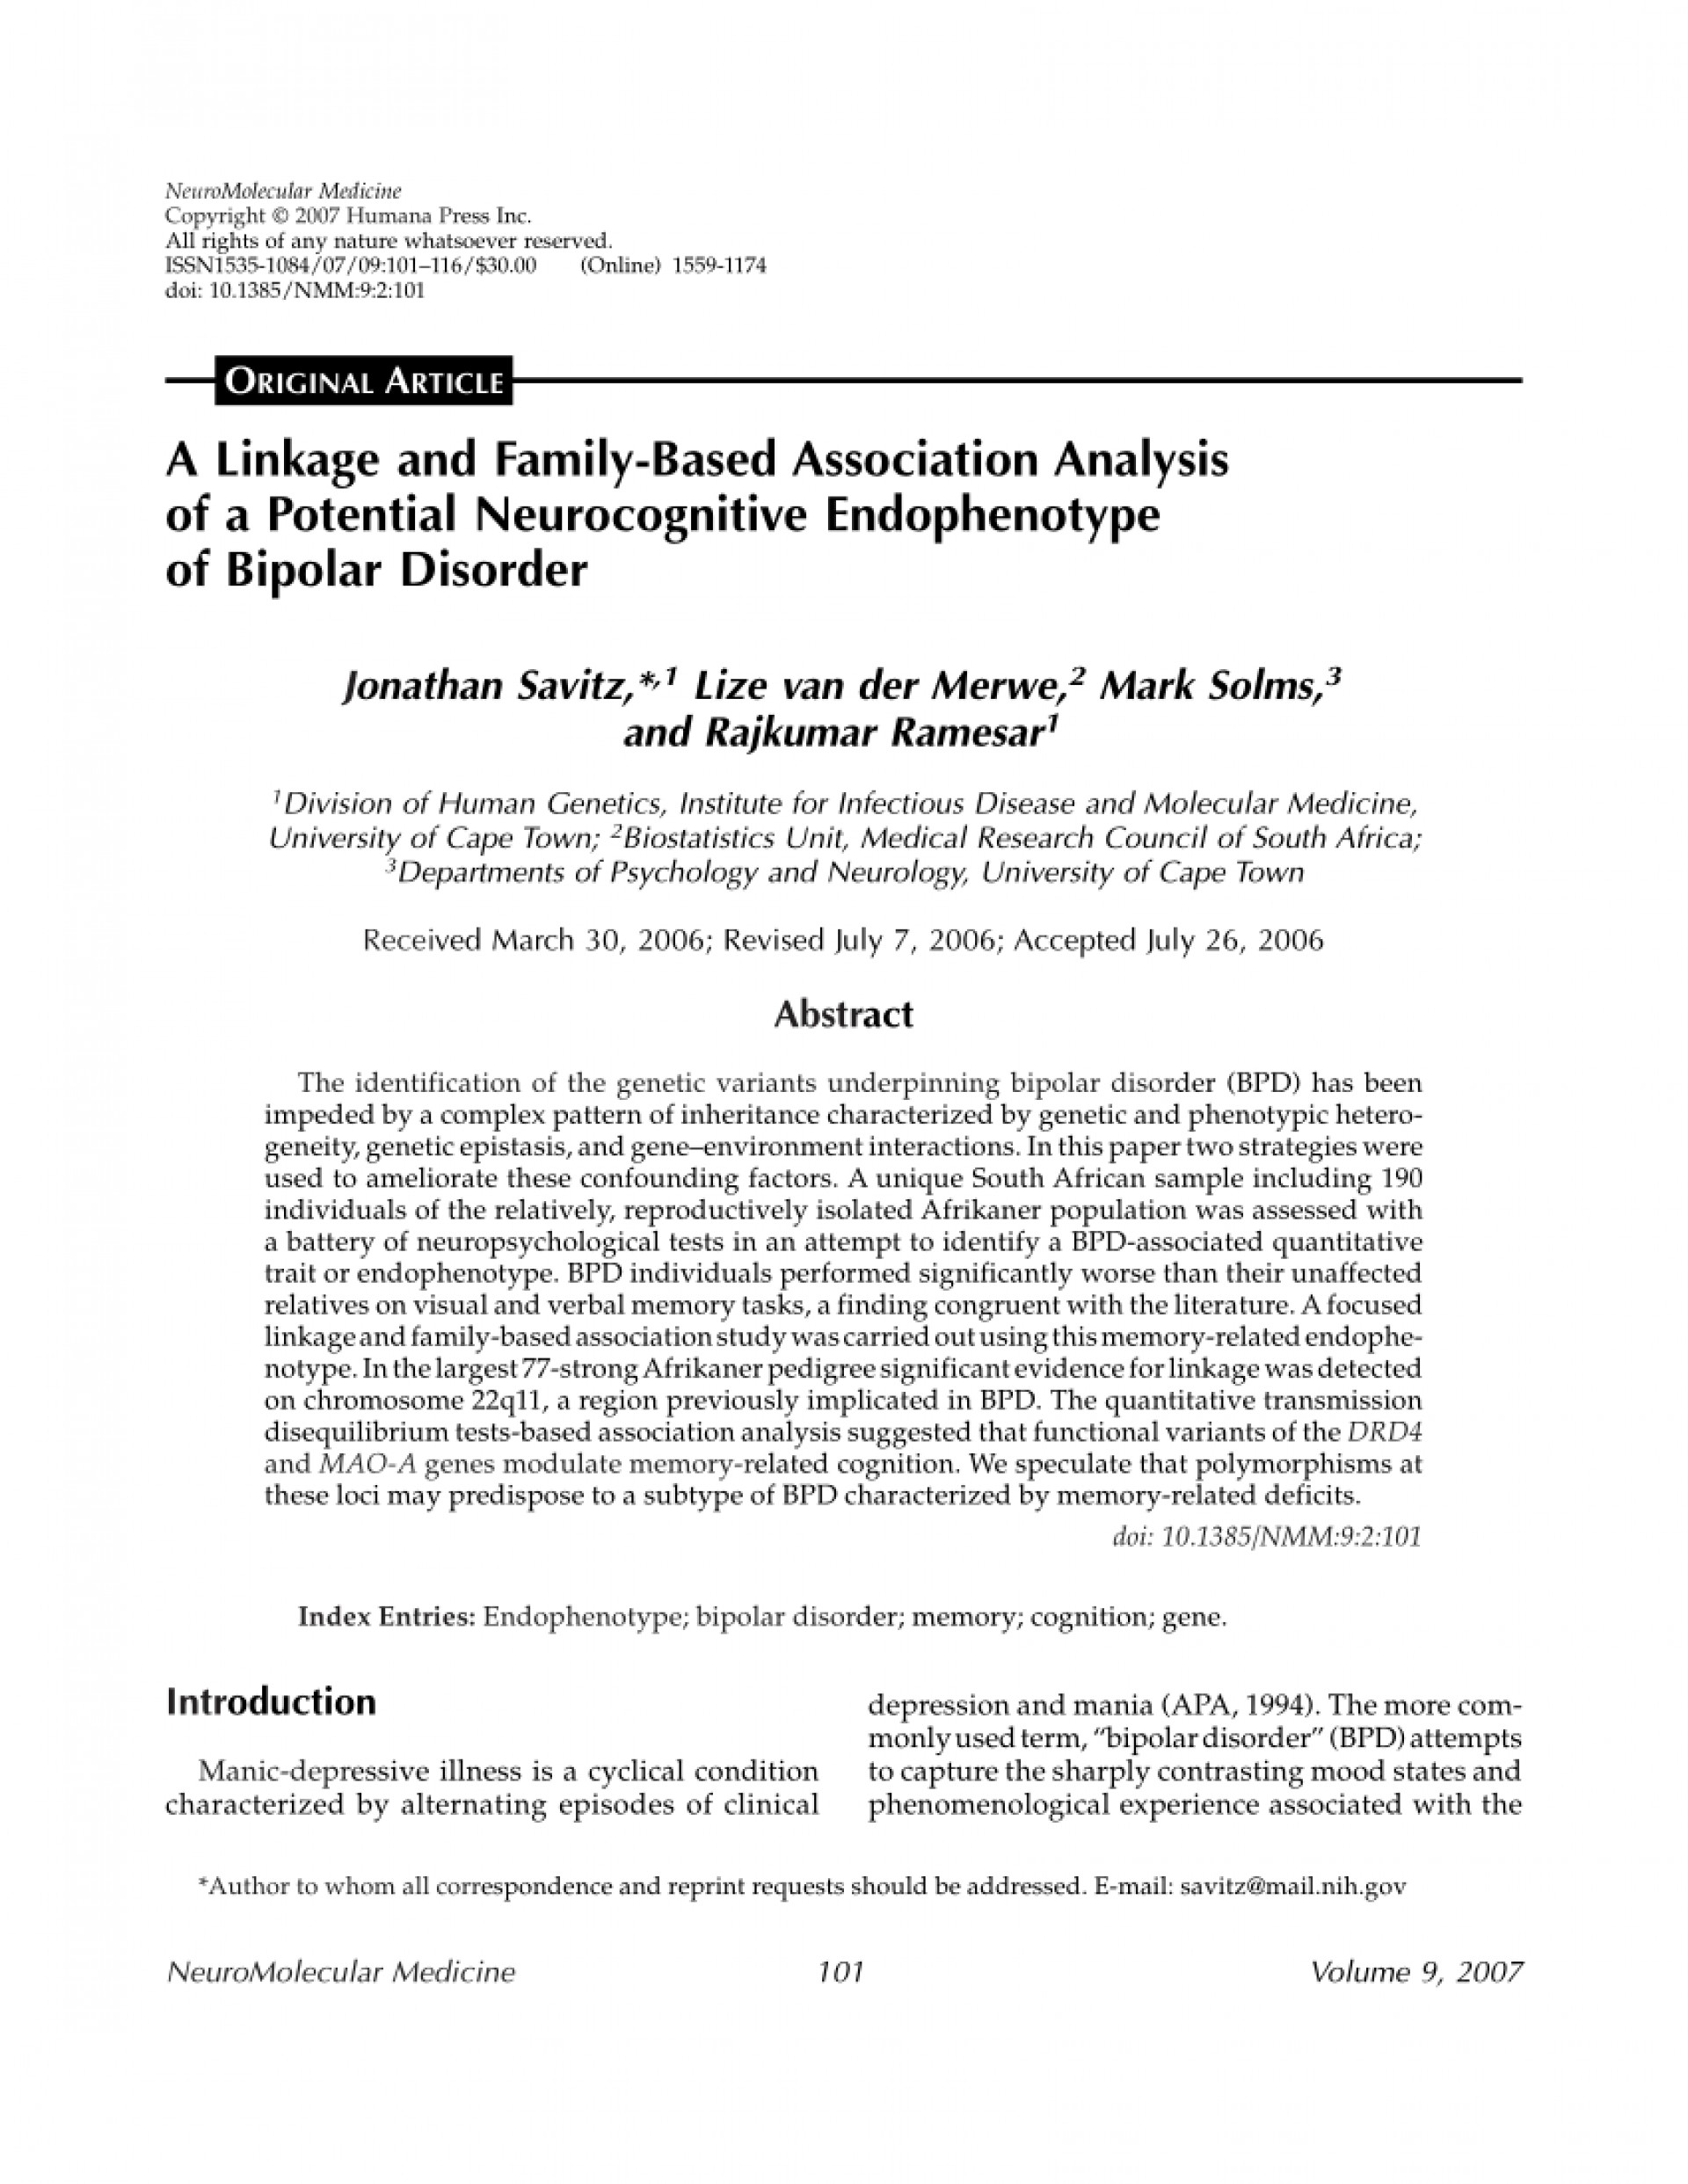 003 Research Paper Apa On Bipolar Disorder Shocking 1920